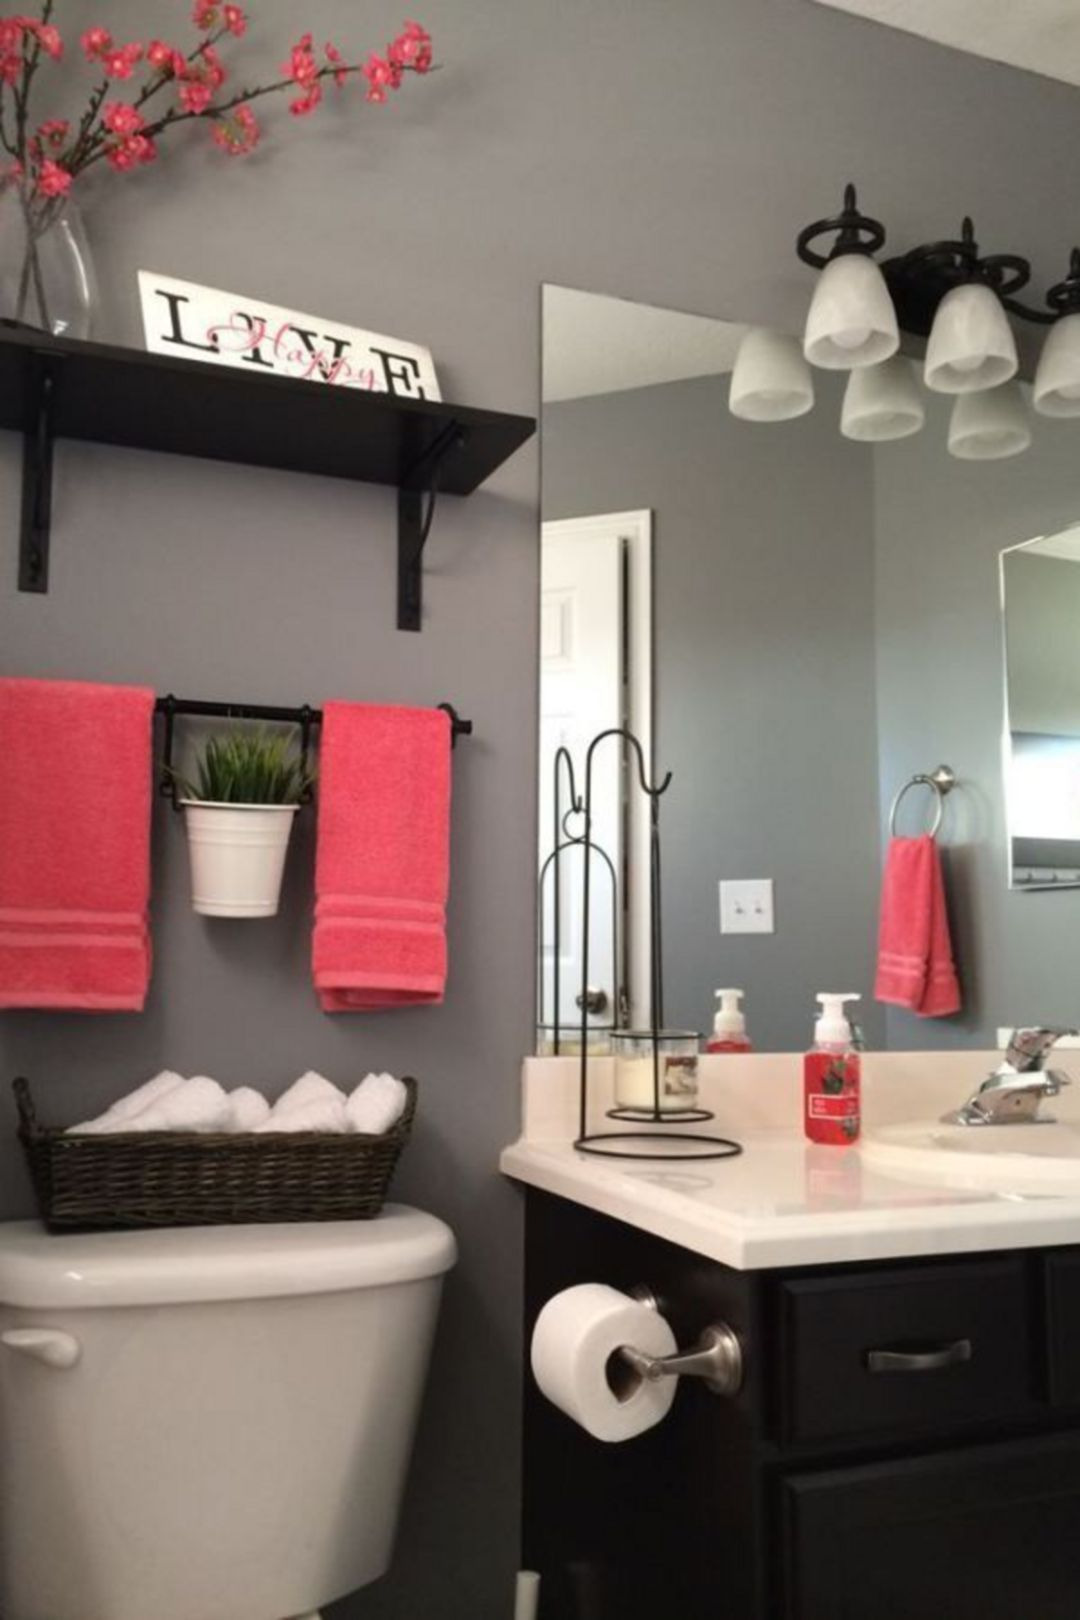 Decorating Ideas for Small Bathrooms In Apartments Unique Small Bathroom Apartment Design Ideas 230